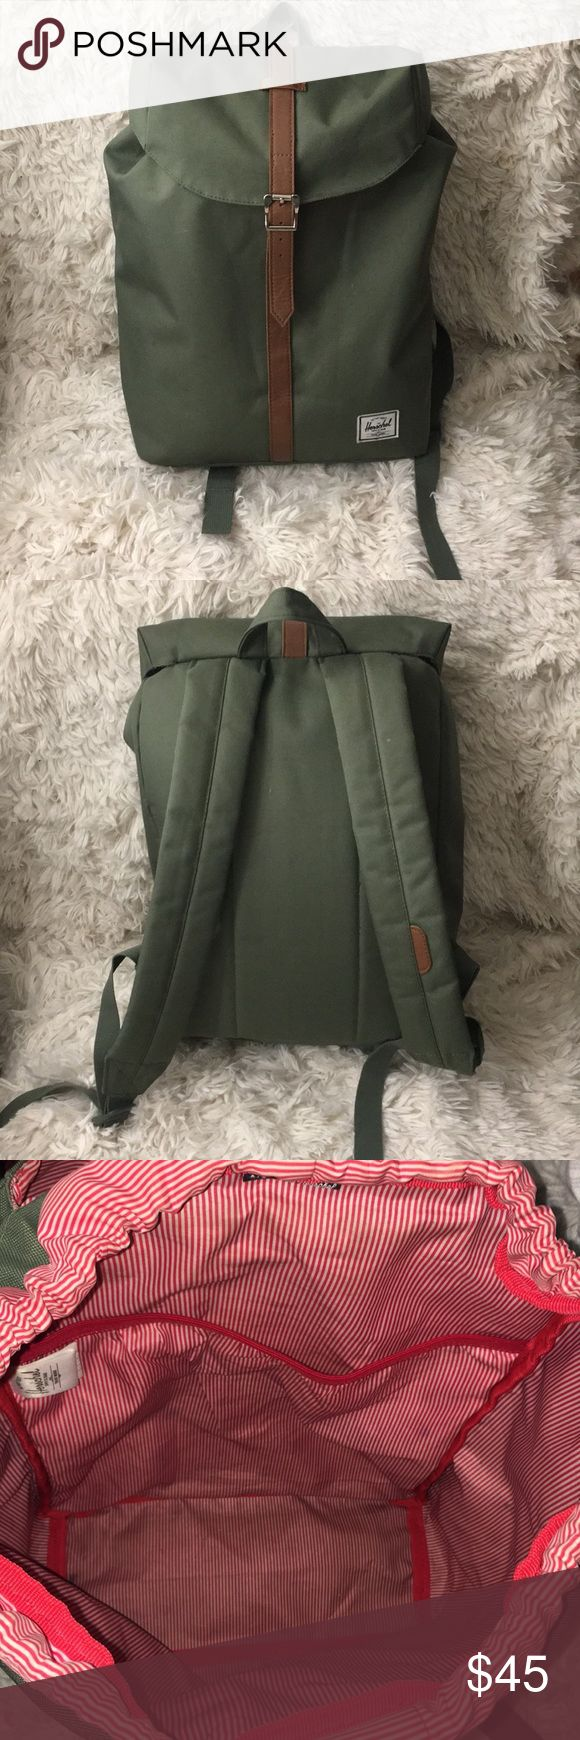 Herschel backpack Olive green post backpack. Dimensions: 13.5 H x 10.75 w Herschel Supply Company Bags Backpacks